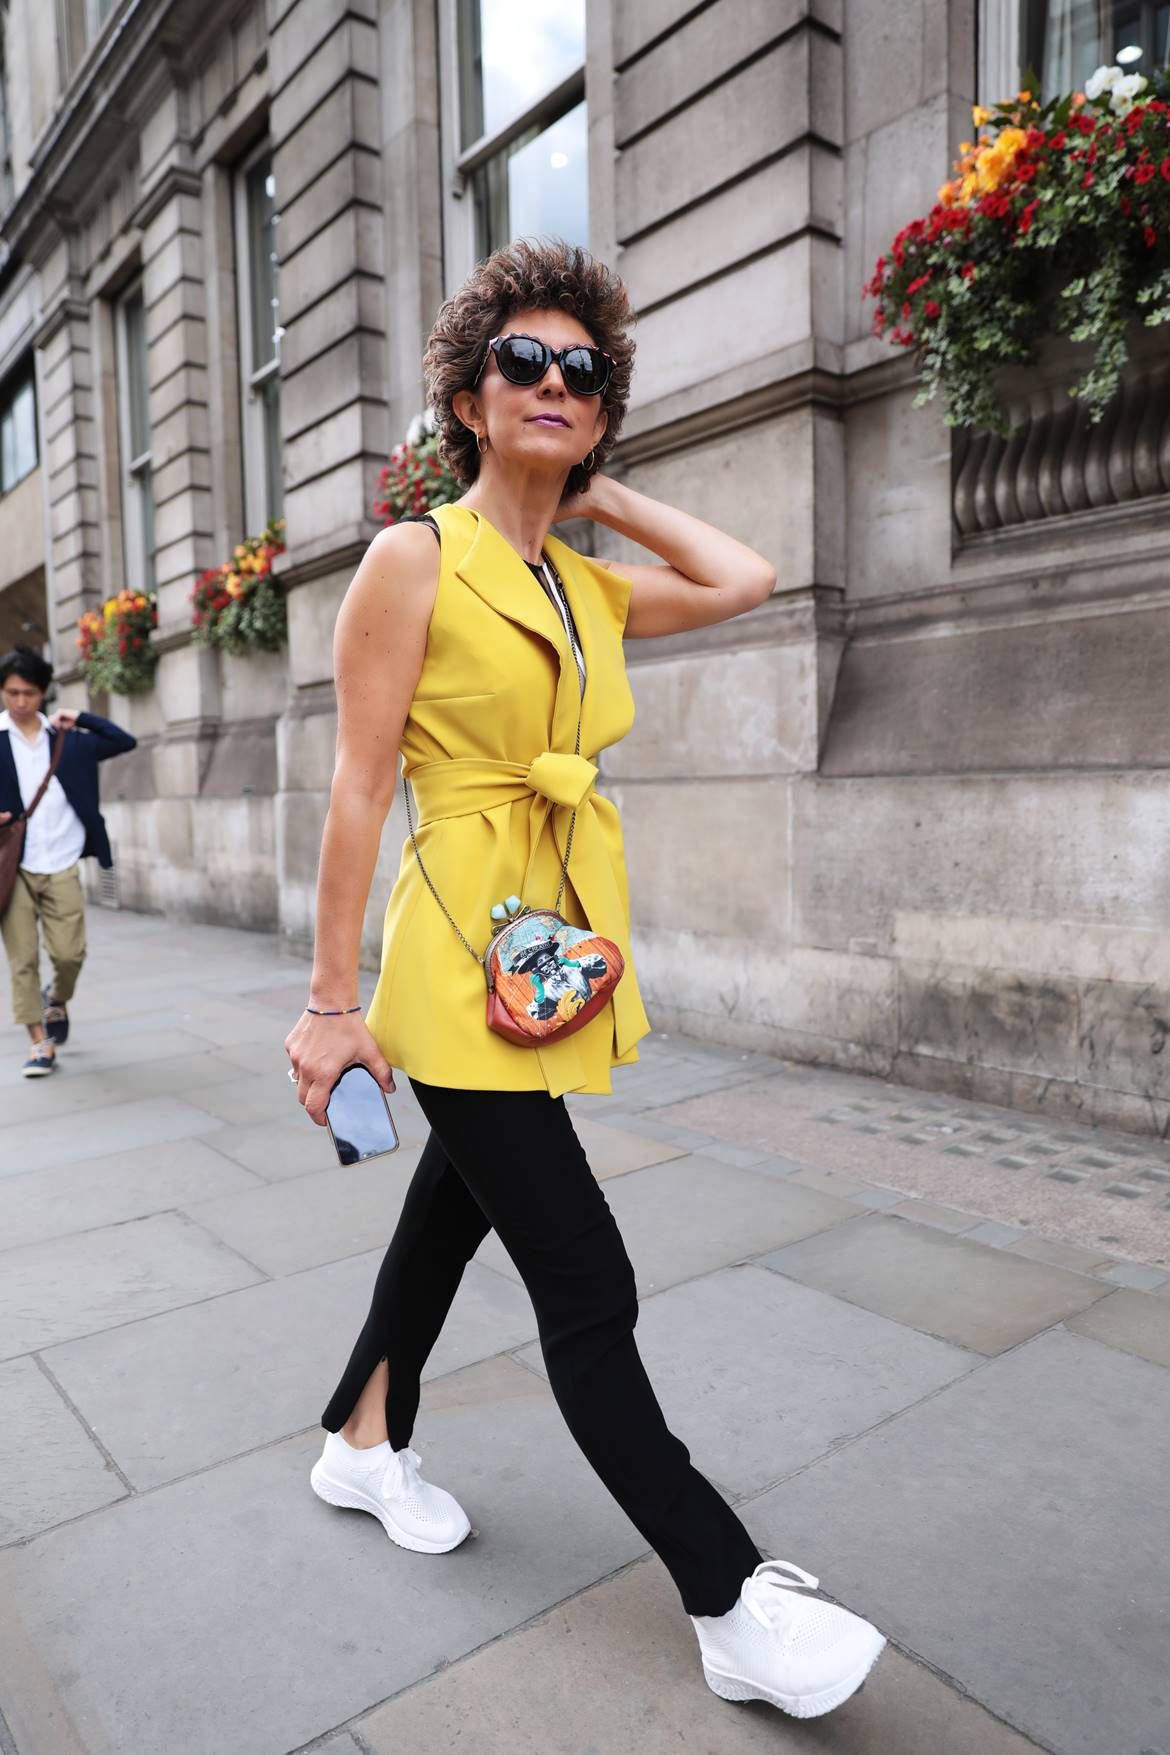 Kathy Heyndels outfit,Poua Stories, fashion collage bag, LFWSS20 street style, Think Feel Discover